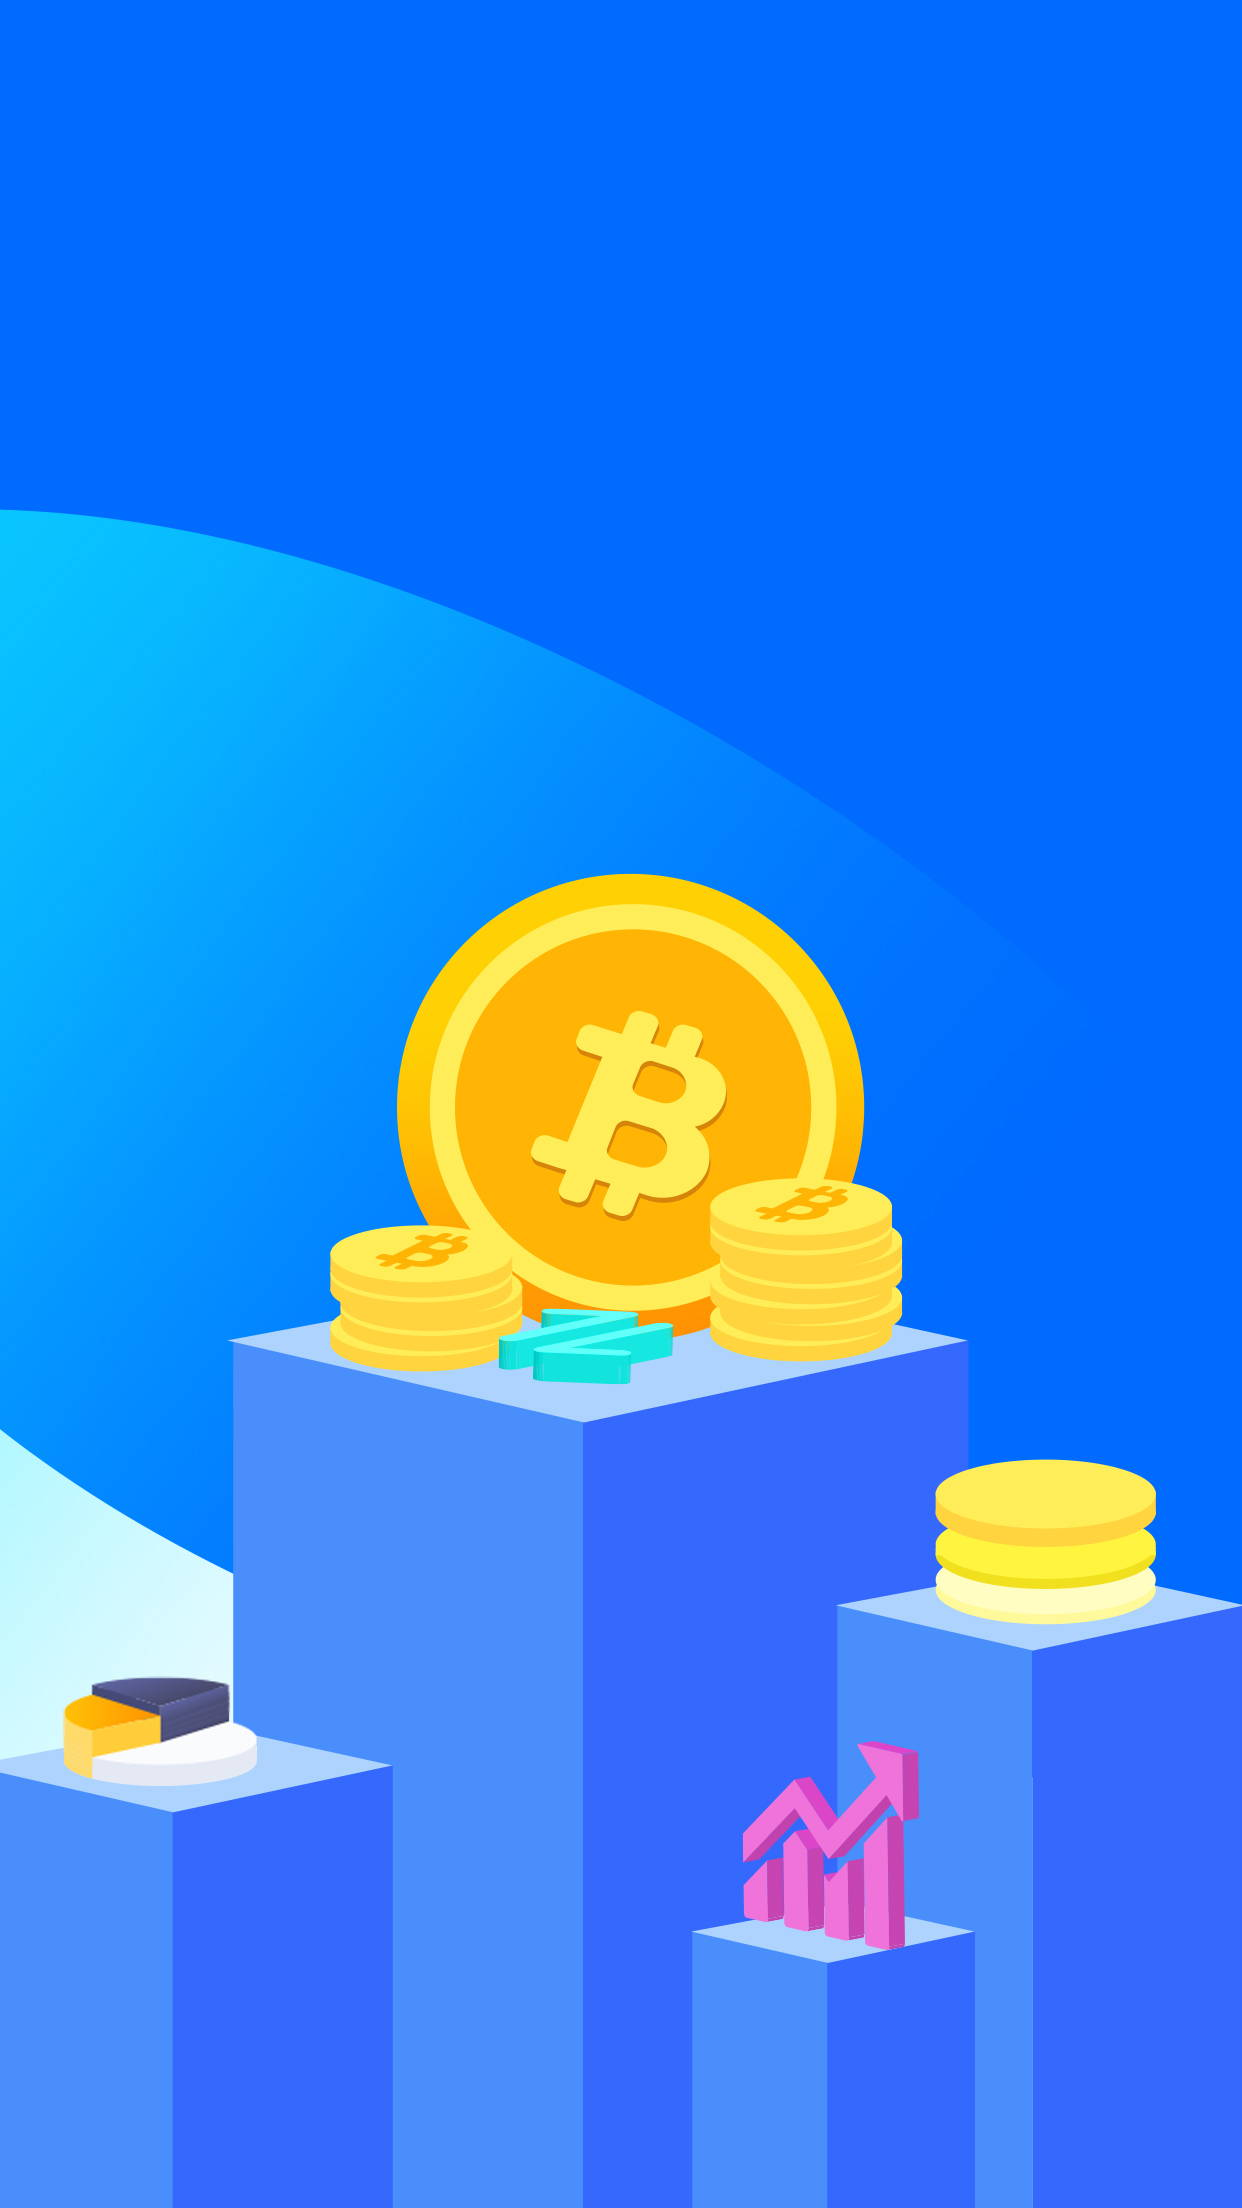 ELLIPAL Finance: easily trade and invest bitcoin